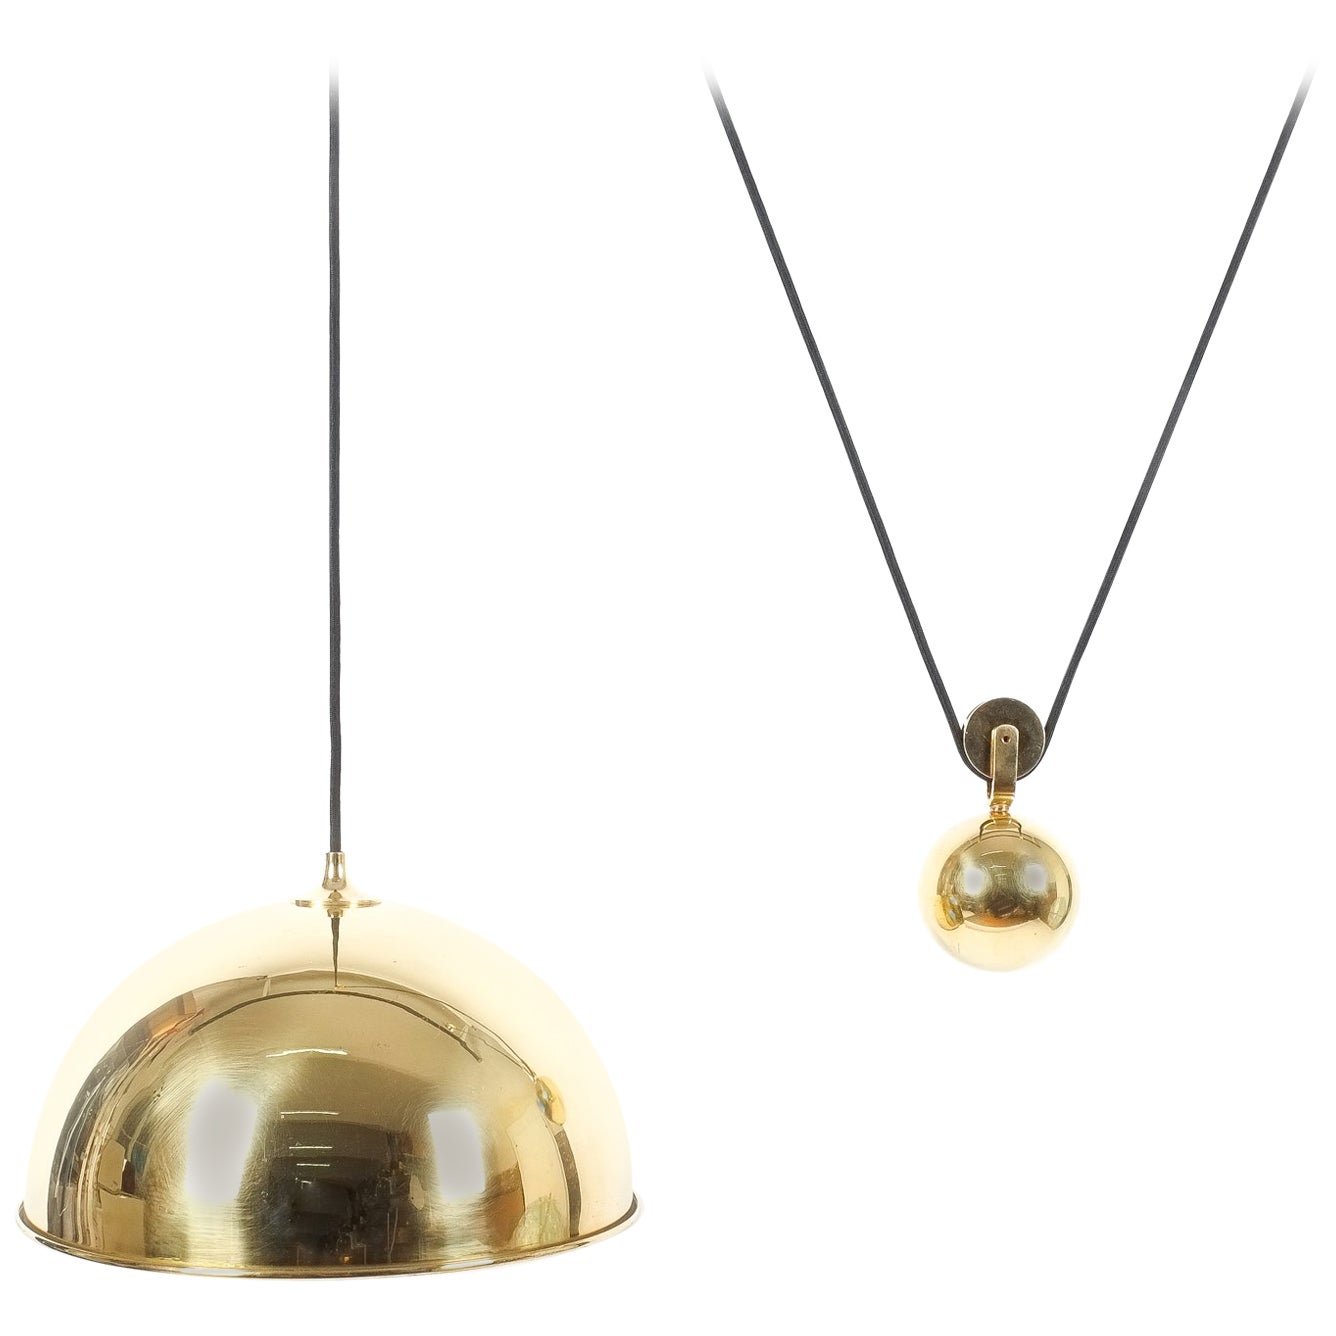 Adjustable Refurbished Brass Counterweight Pendant Lamp by Florian Schulz